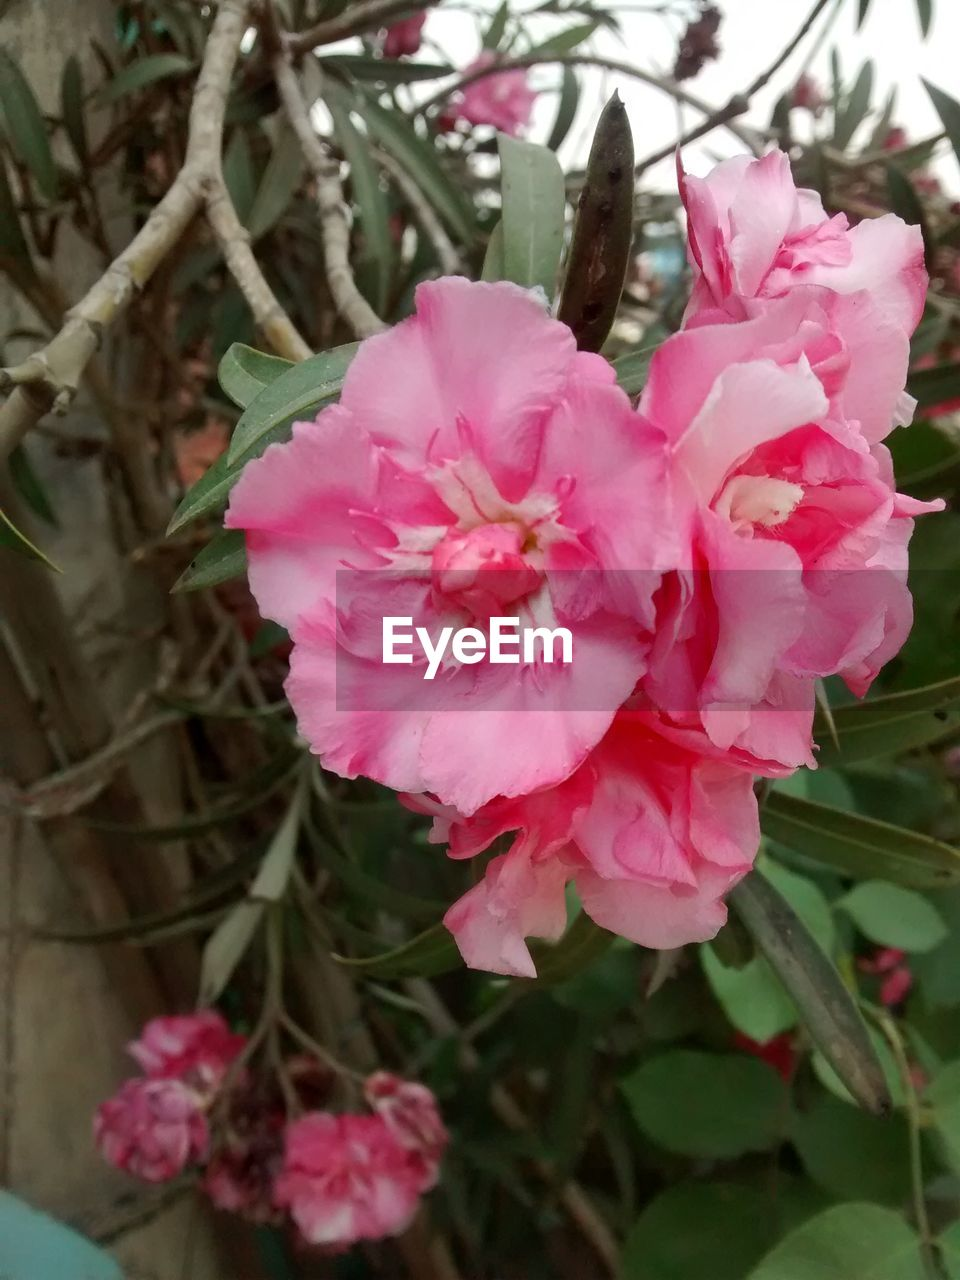 flower, pink color, petal, nature, beauty in nature, plant, growth, fragility, flower head, no people, close-up, wild rose, outdoors, freshness, day, blooming